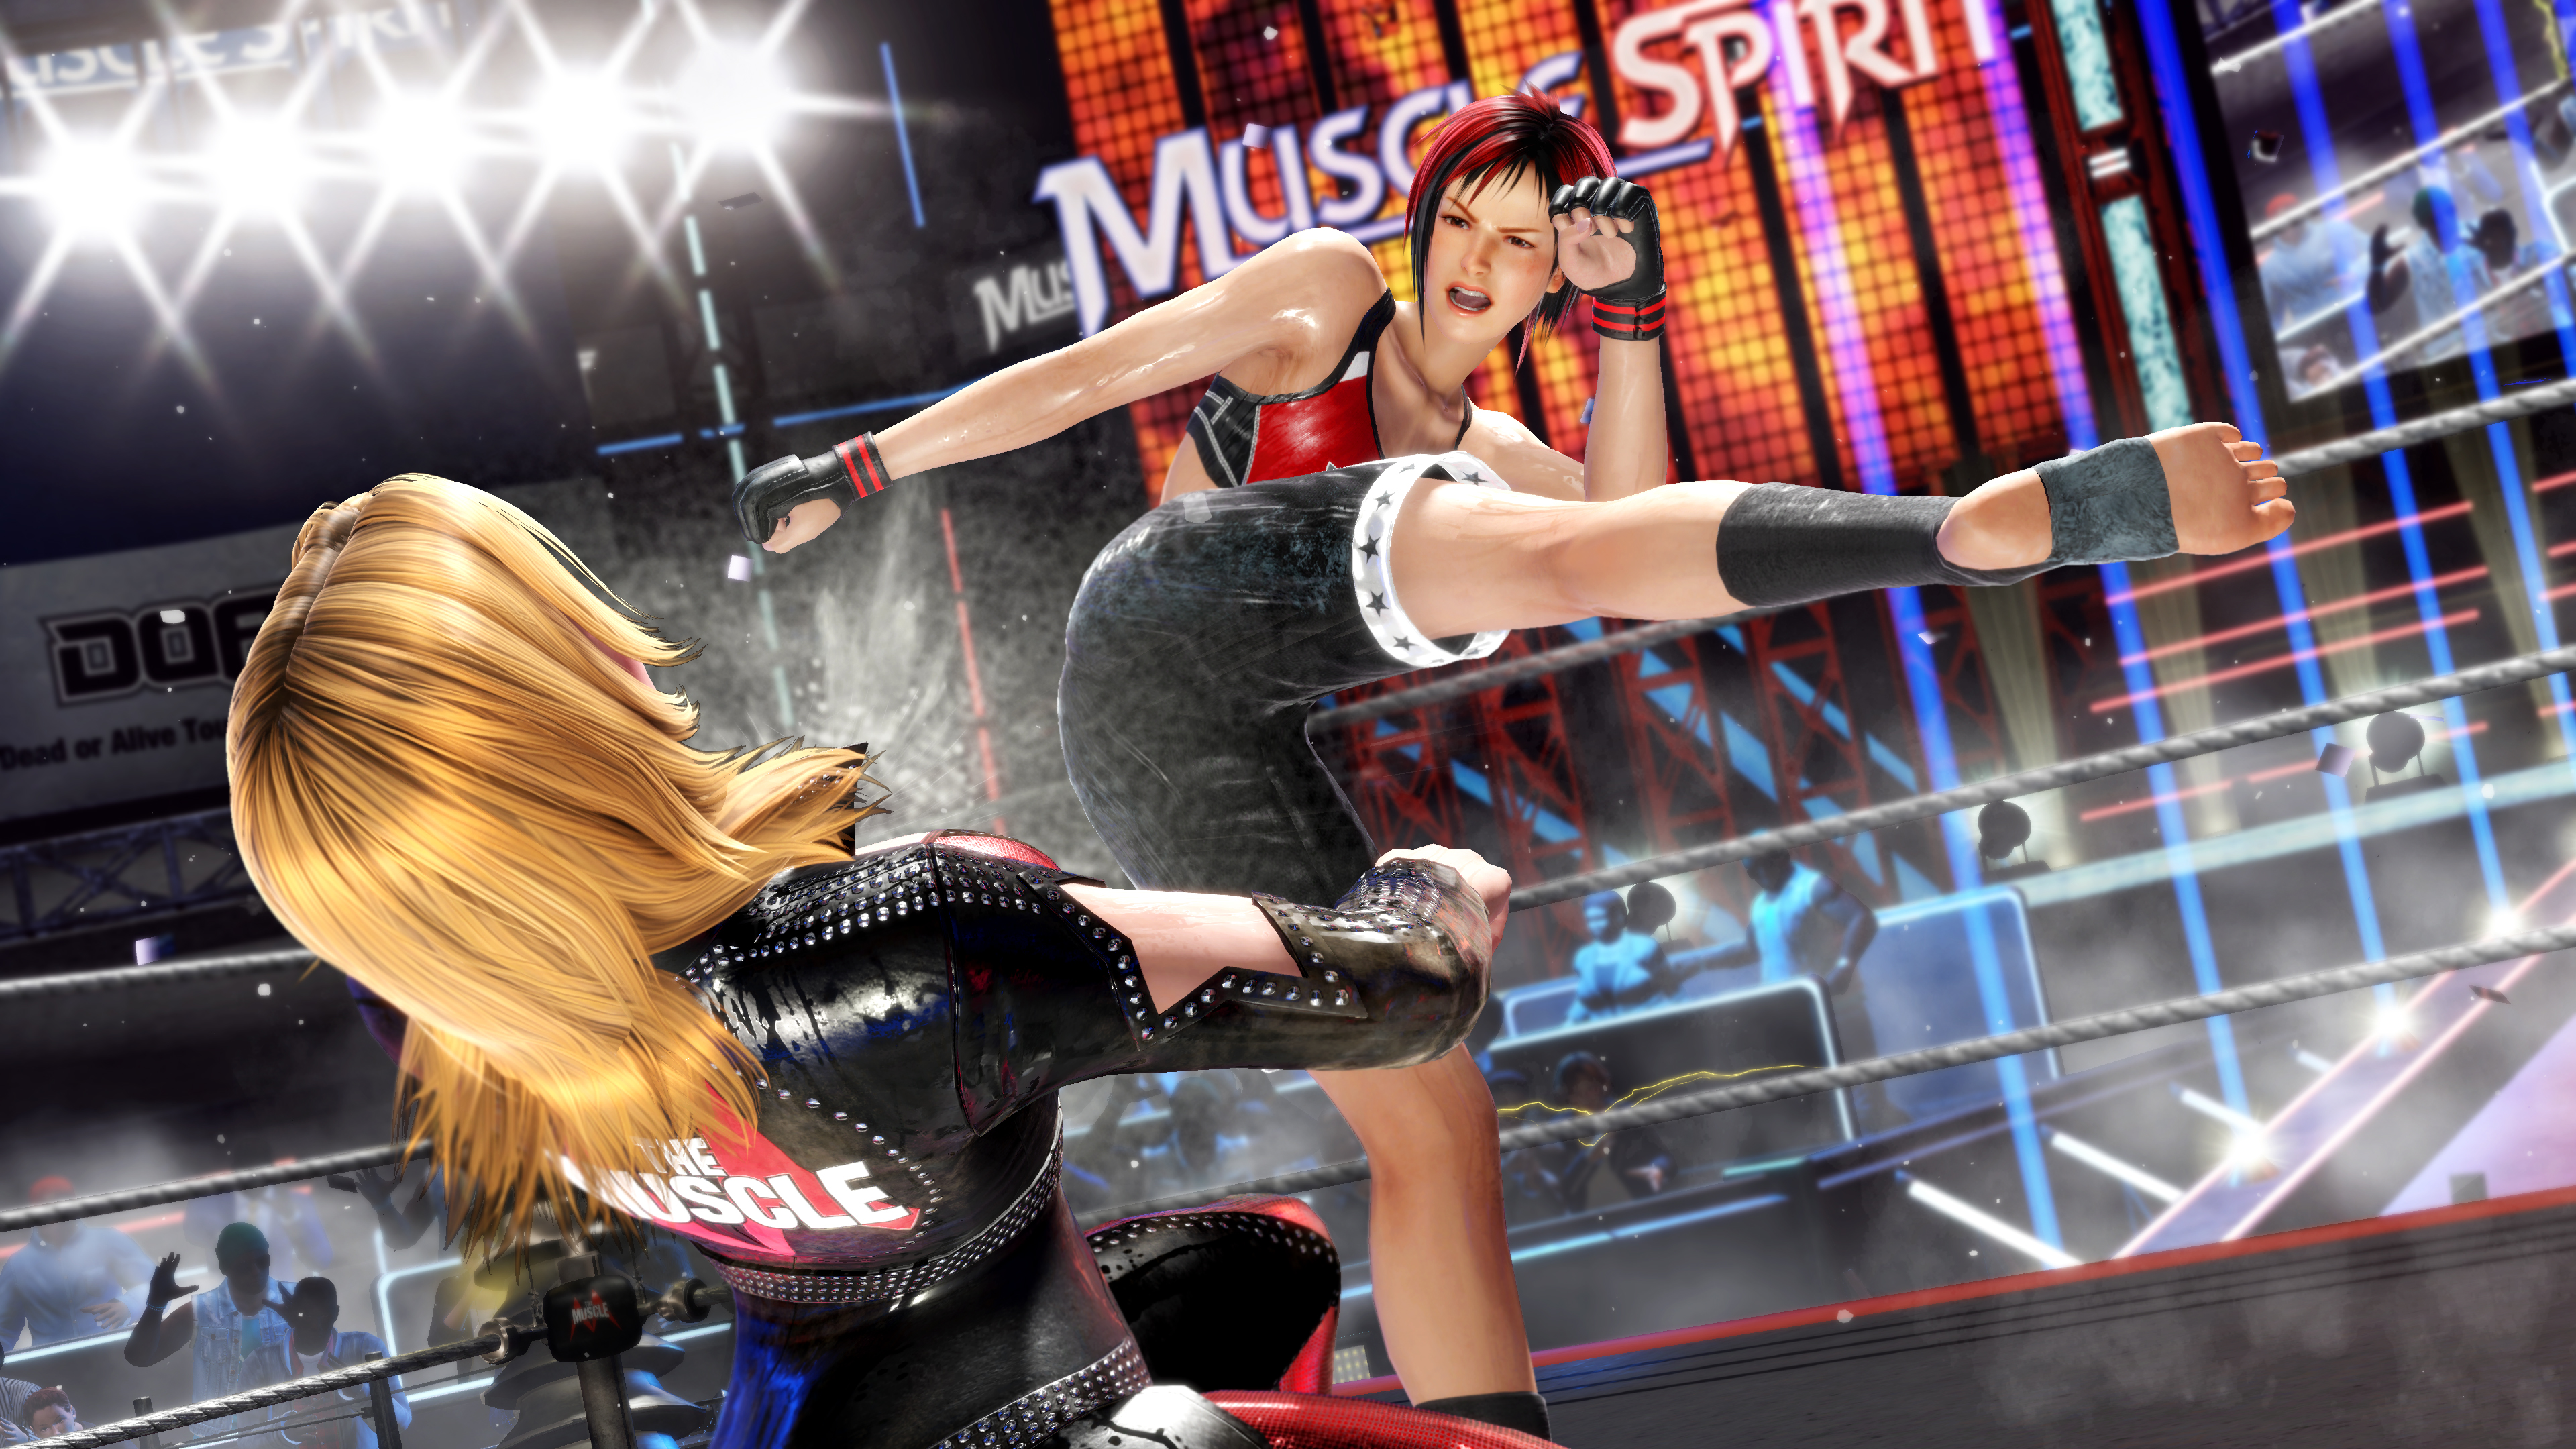 Evo Japan stream taken offline as Dead or Alive 6 segment gets raunchy